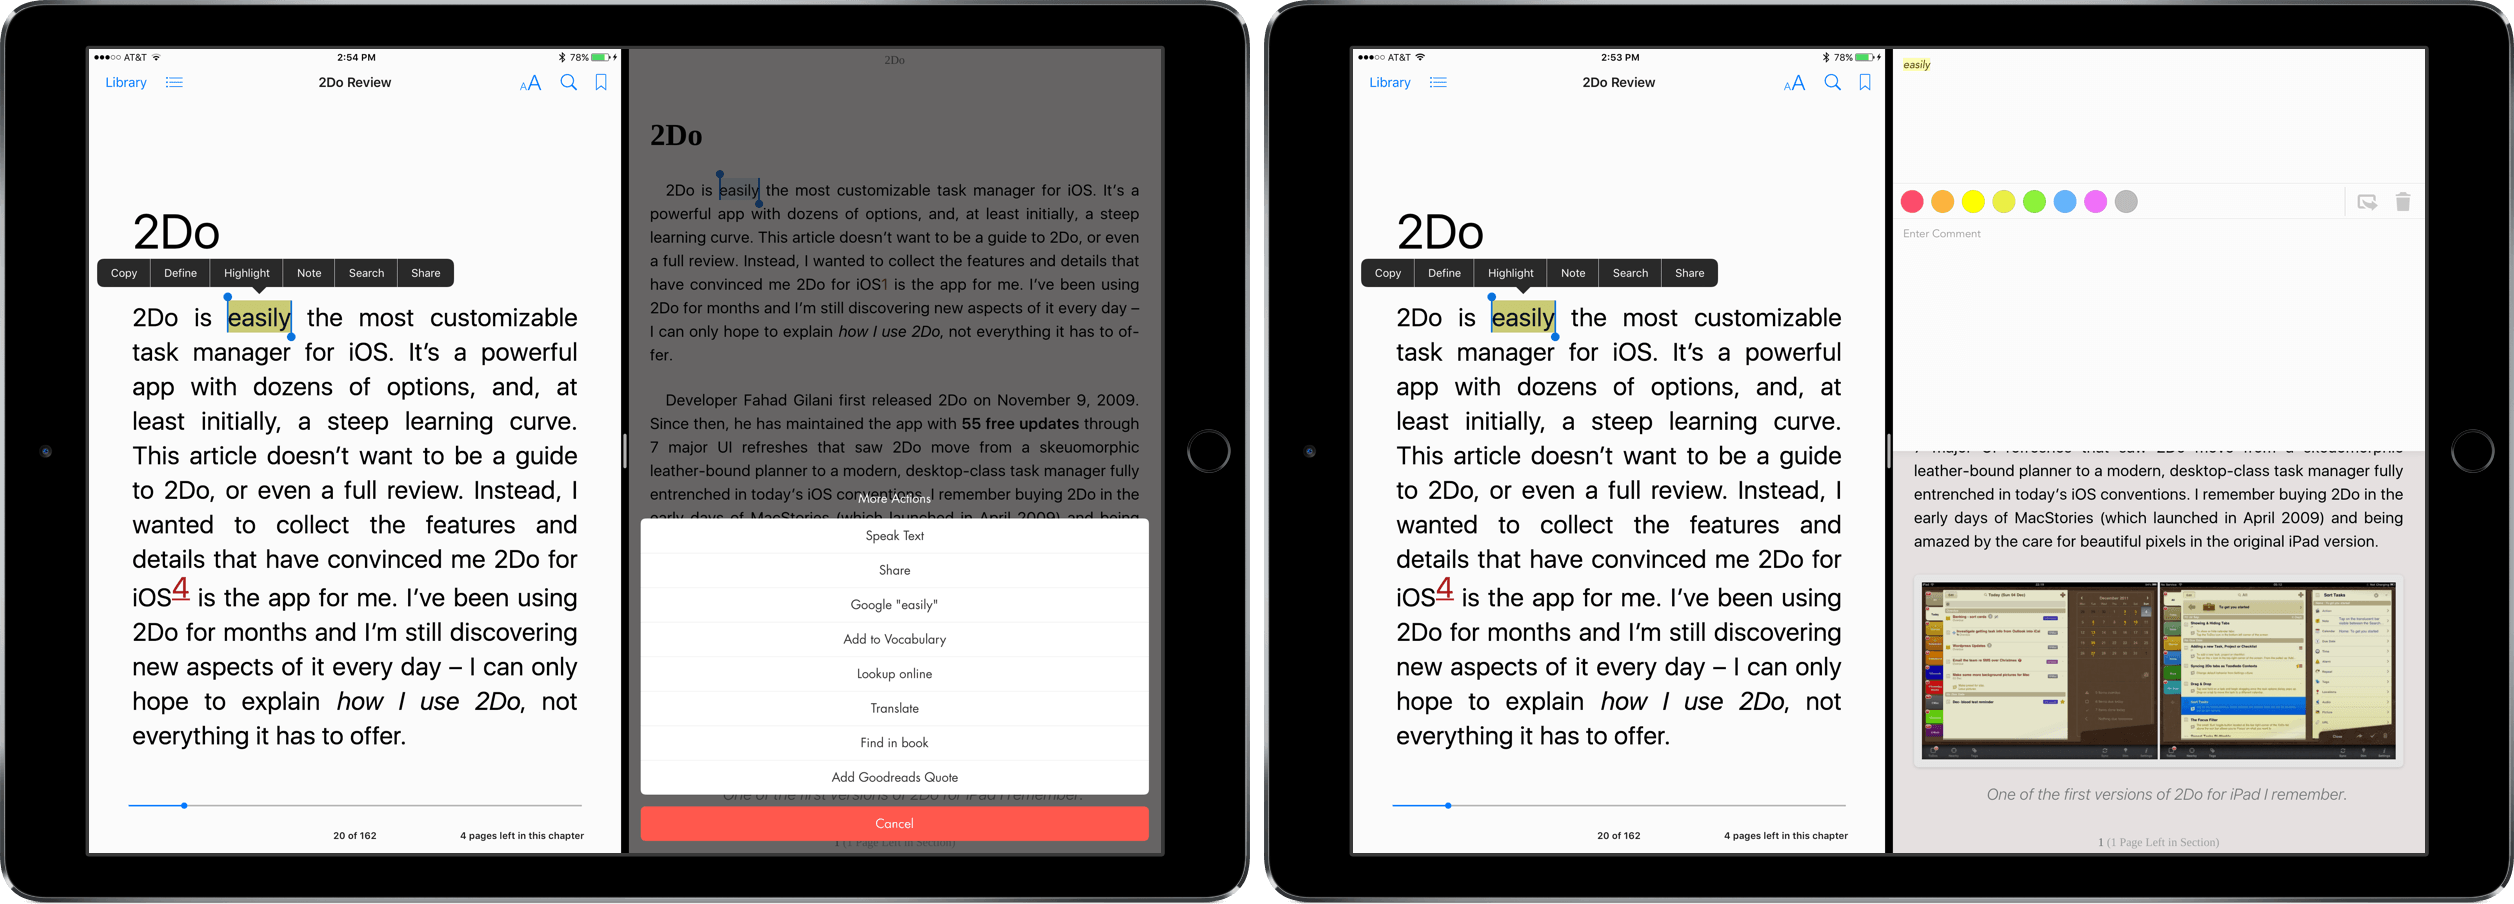 hyphen, ebook apps, apps for ios, manage your library